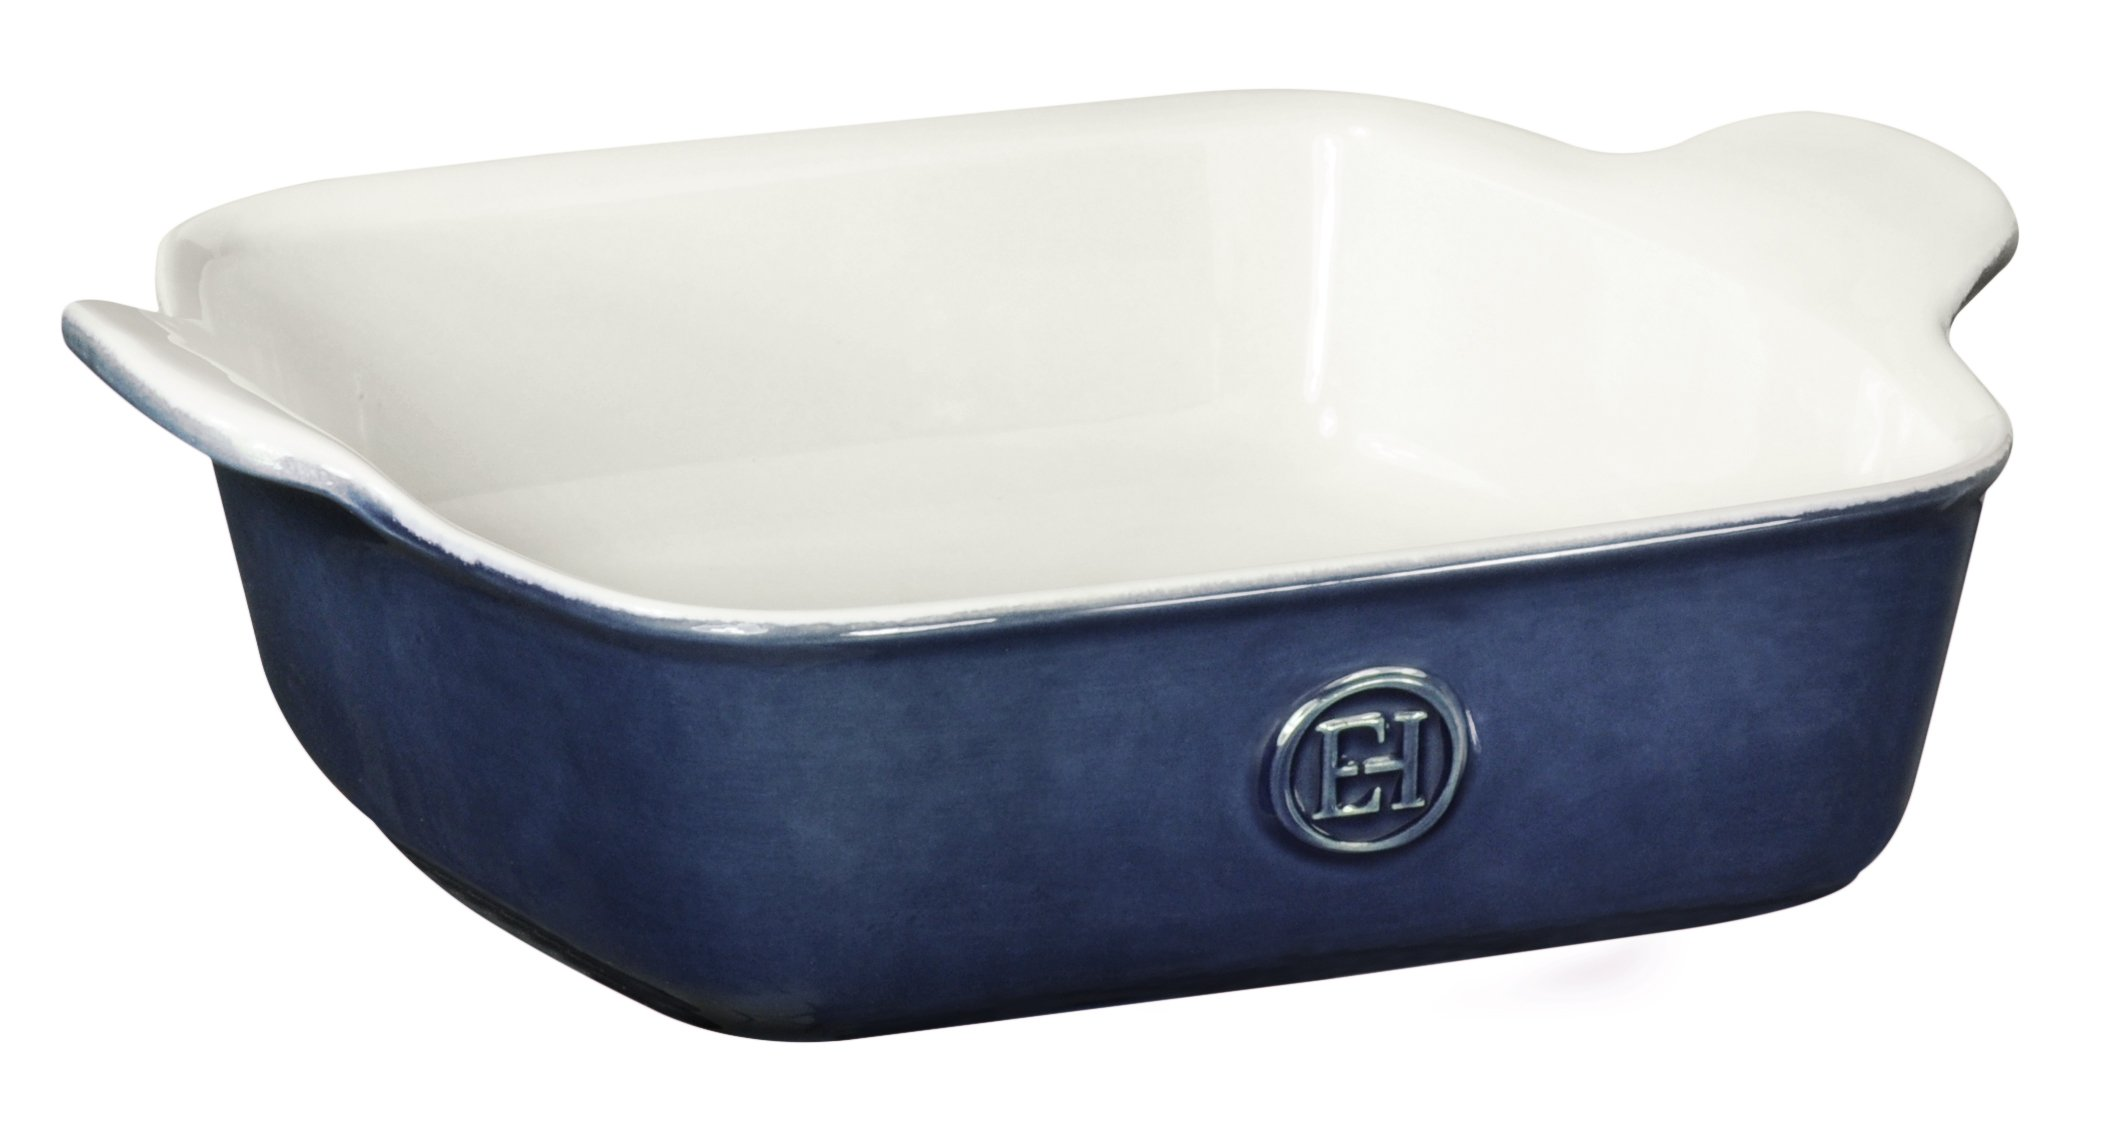 Emile Henry Made In France HR Modern Classics Square Baking Dish 8 x 8'' / 2 Qt, Blue